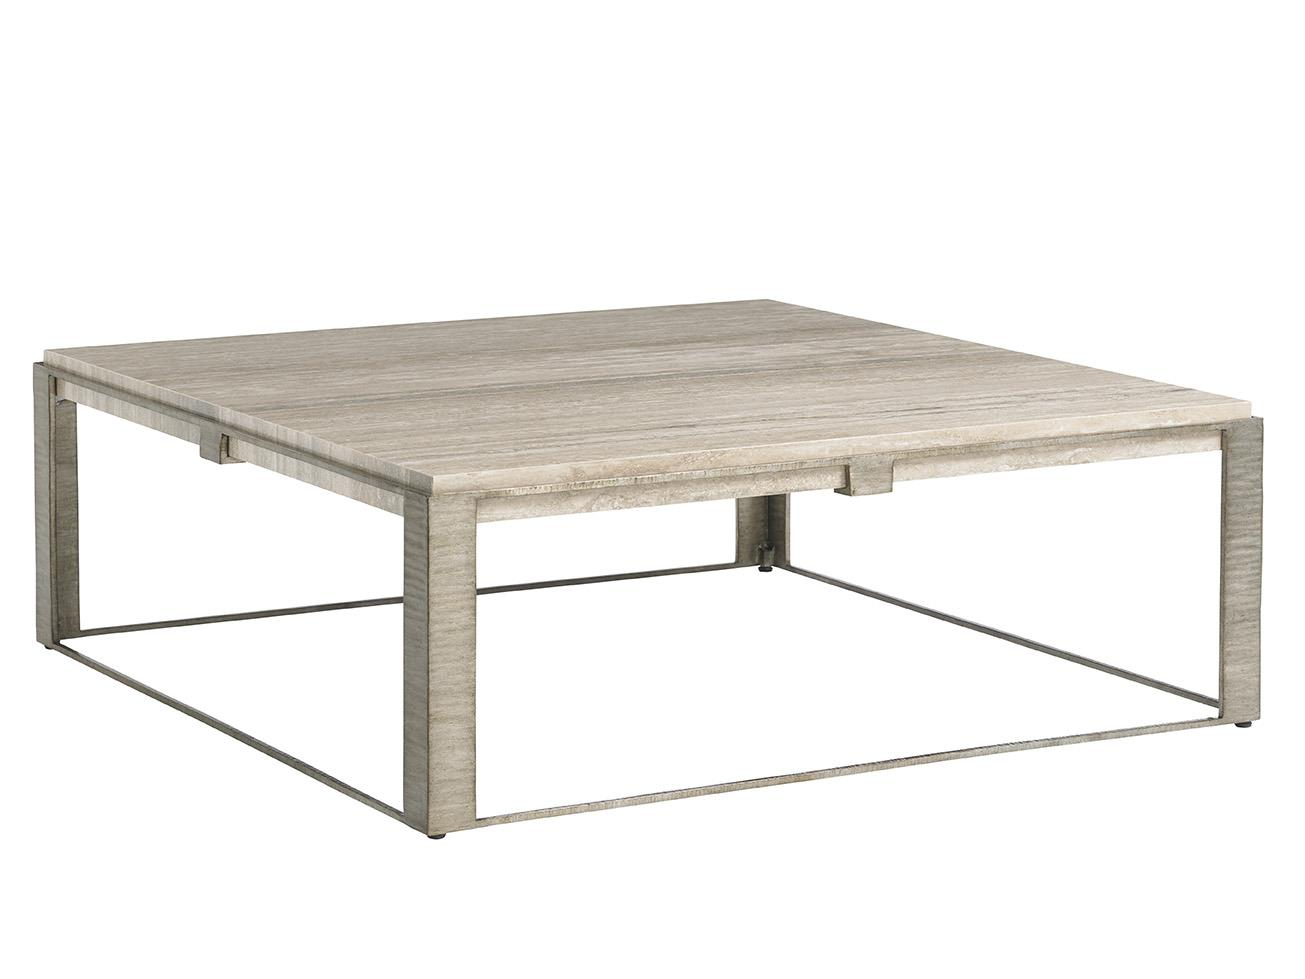 Lexington Laurel Canyon Stone Canyon Cocktail Table With Silver Travertine Top Reeds Furniture